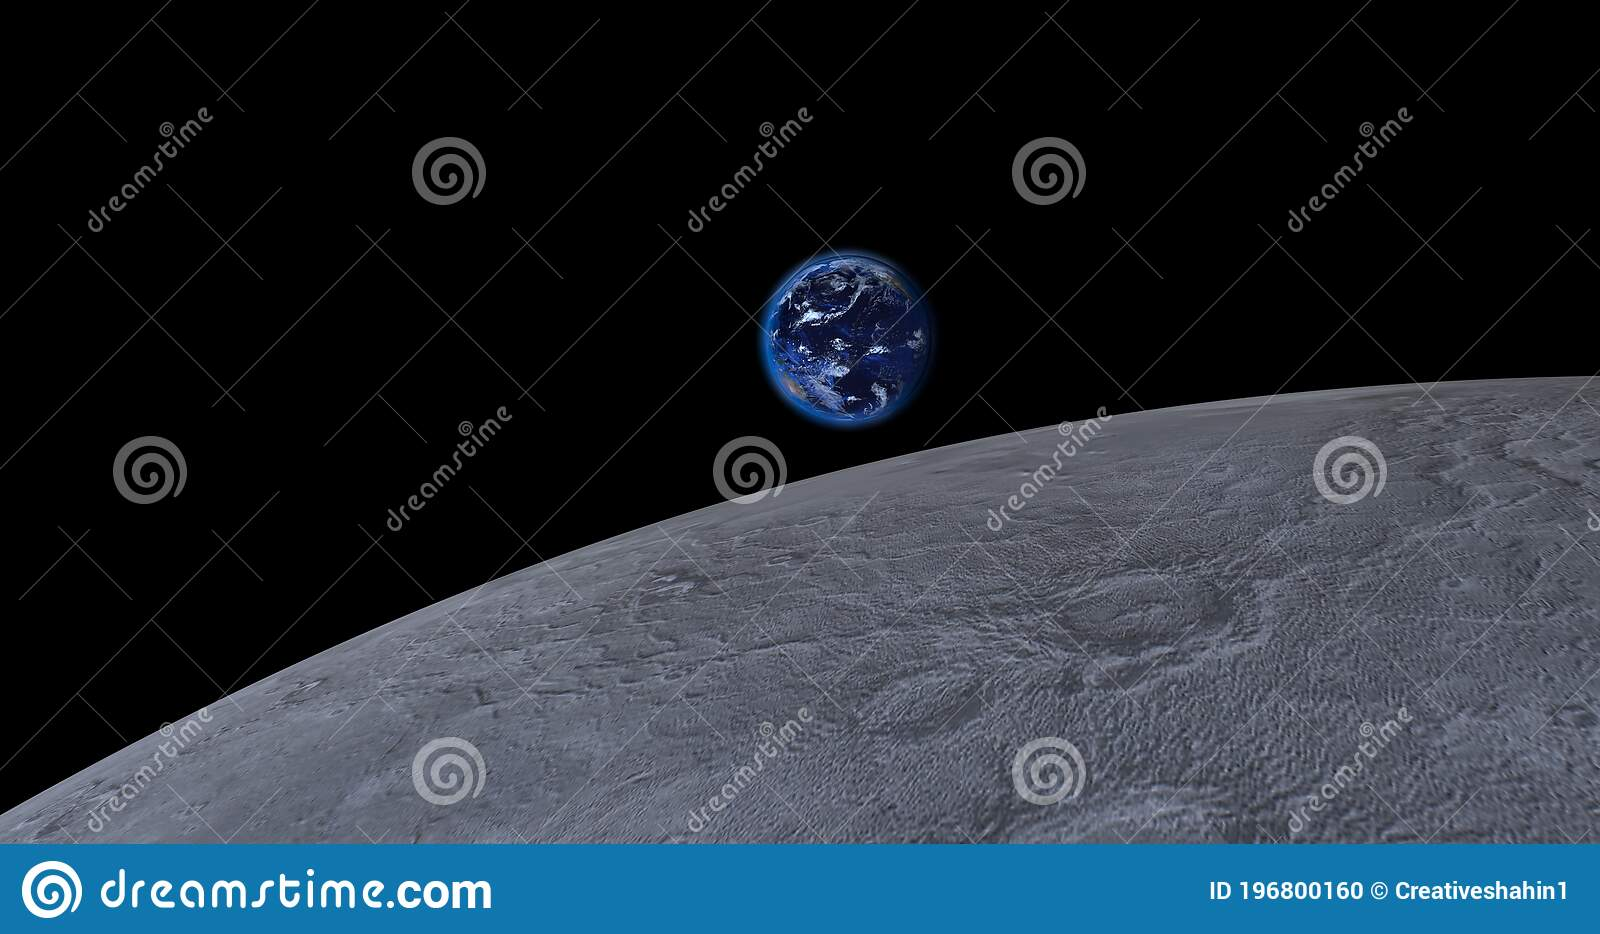 Closeup Planet Earth From Space Over 4k Resolution 3d Rendered Planet Earth Beautiful Blue Planet Earth Over 4k Resolution Stock Illustration Illustration Of Clouds Blue 196800160